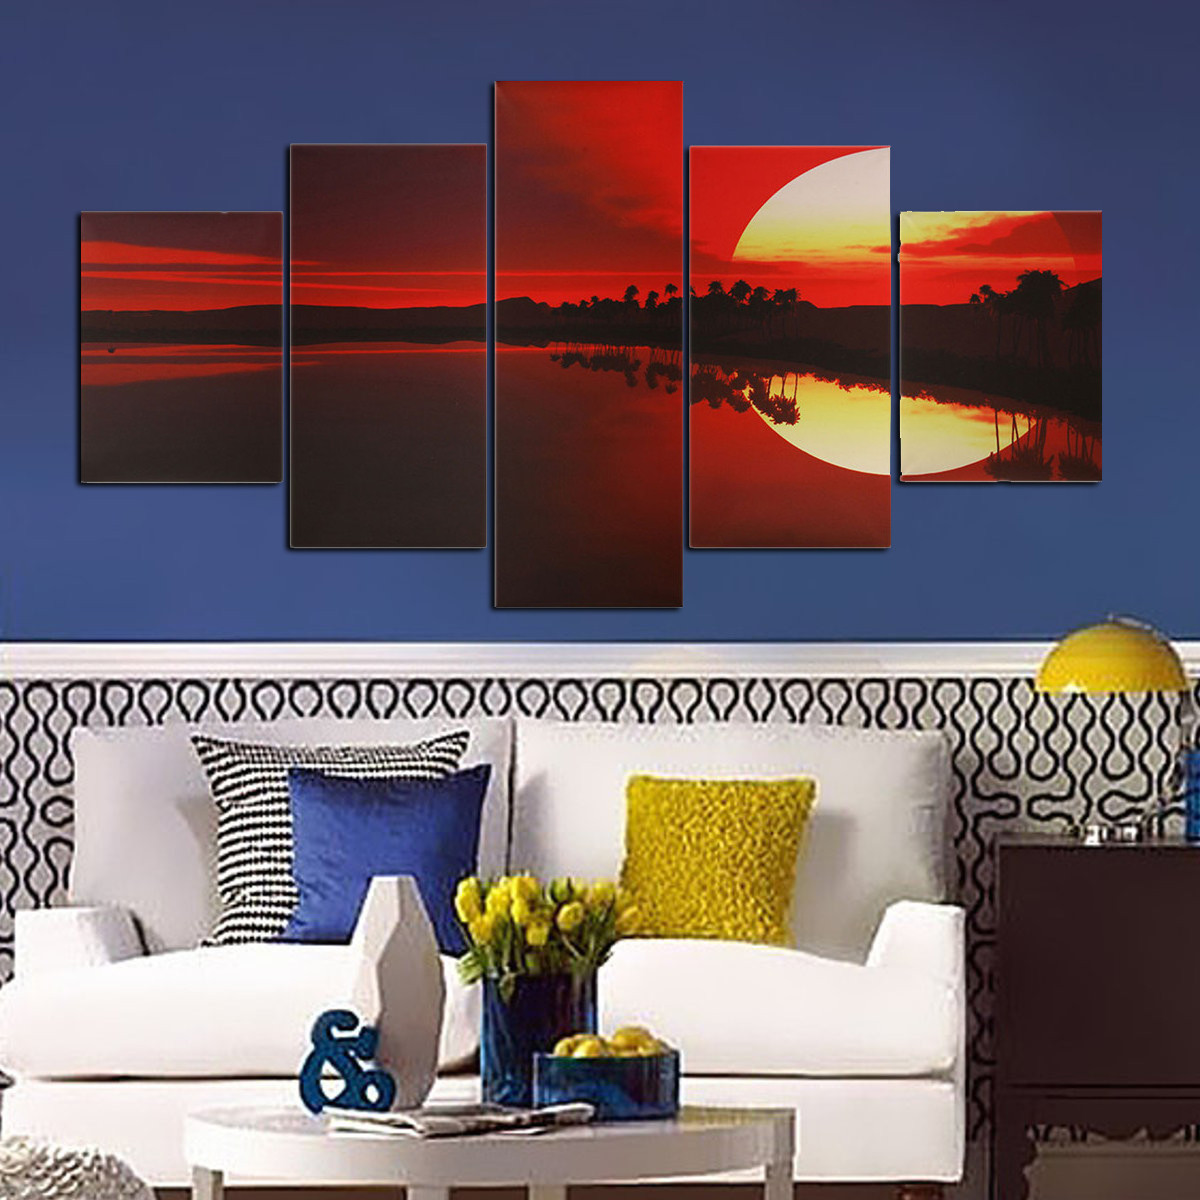 Http Www Banggood Com 5pcs Frameless Canvas Painting Red Dusk Lakeside Picture Modern Wall Art Home Decor P 1097078 Html